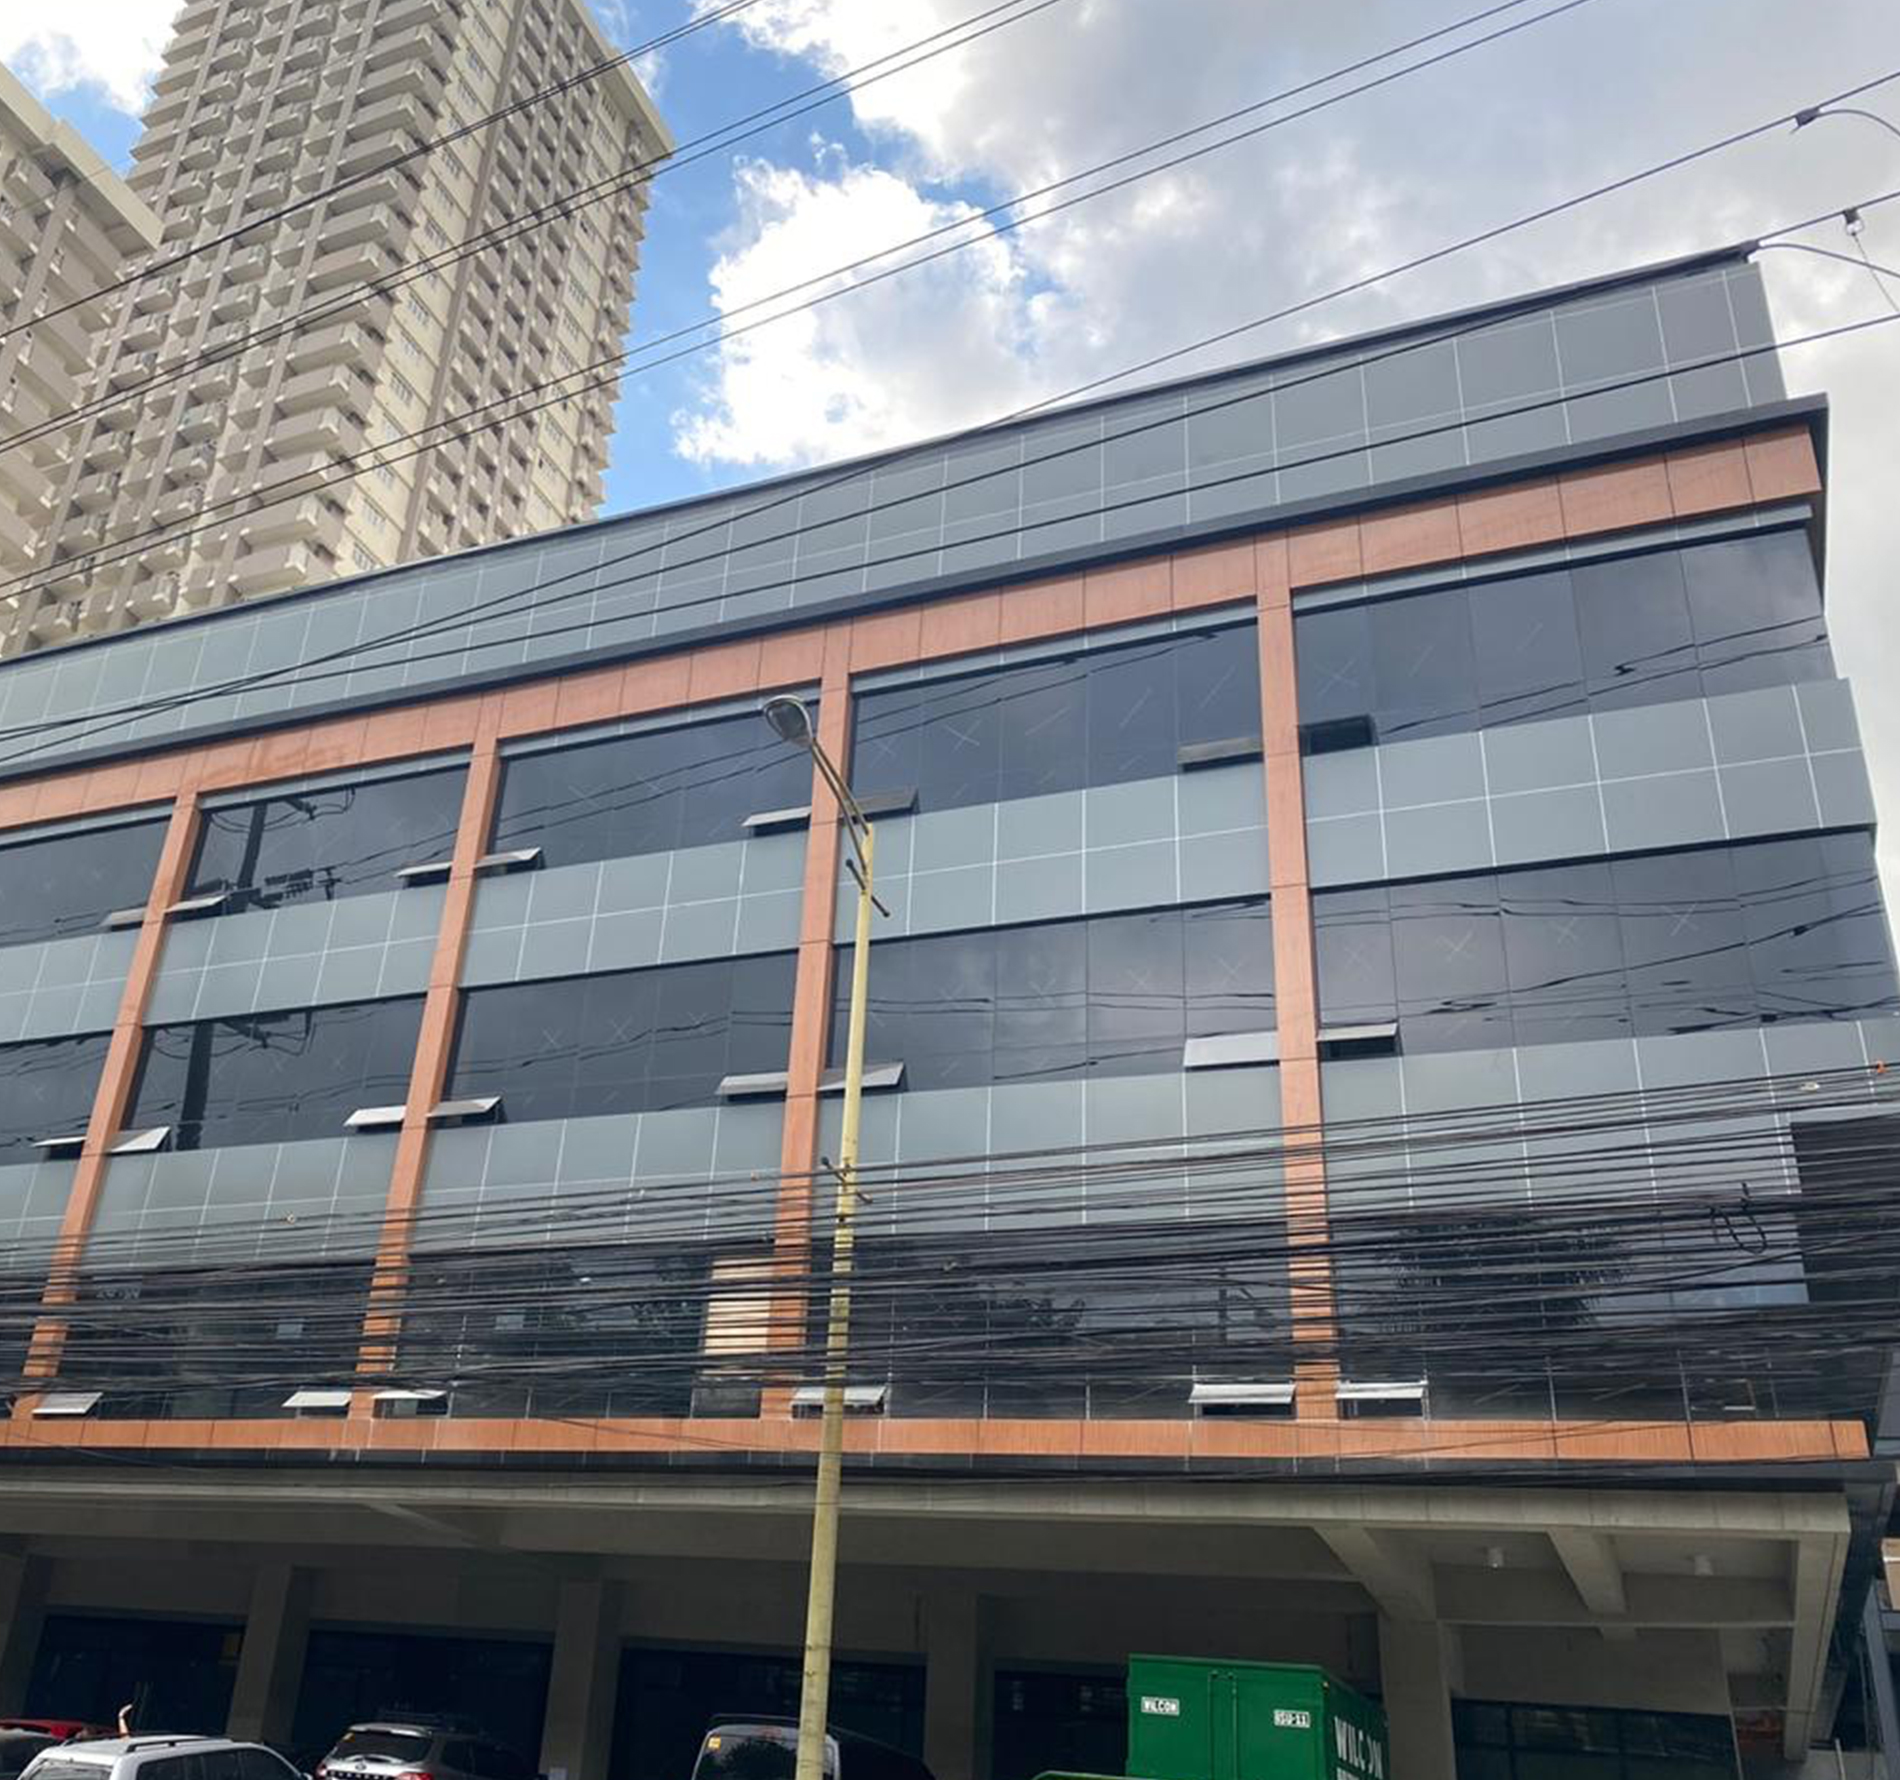 494 sqm Long-Term Office Space for Lease in KDC Plaza, Makati